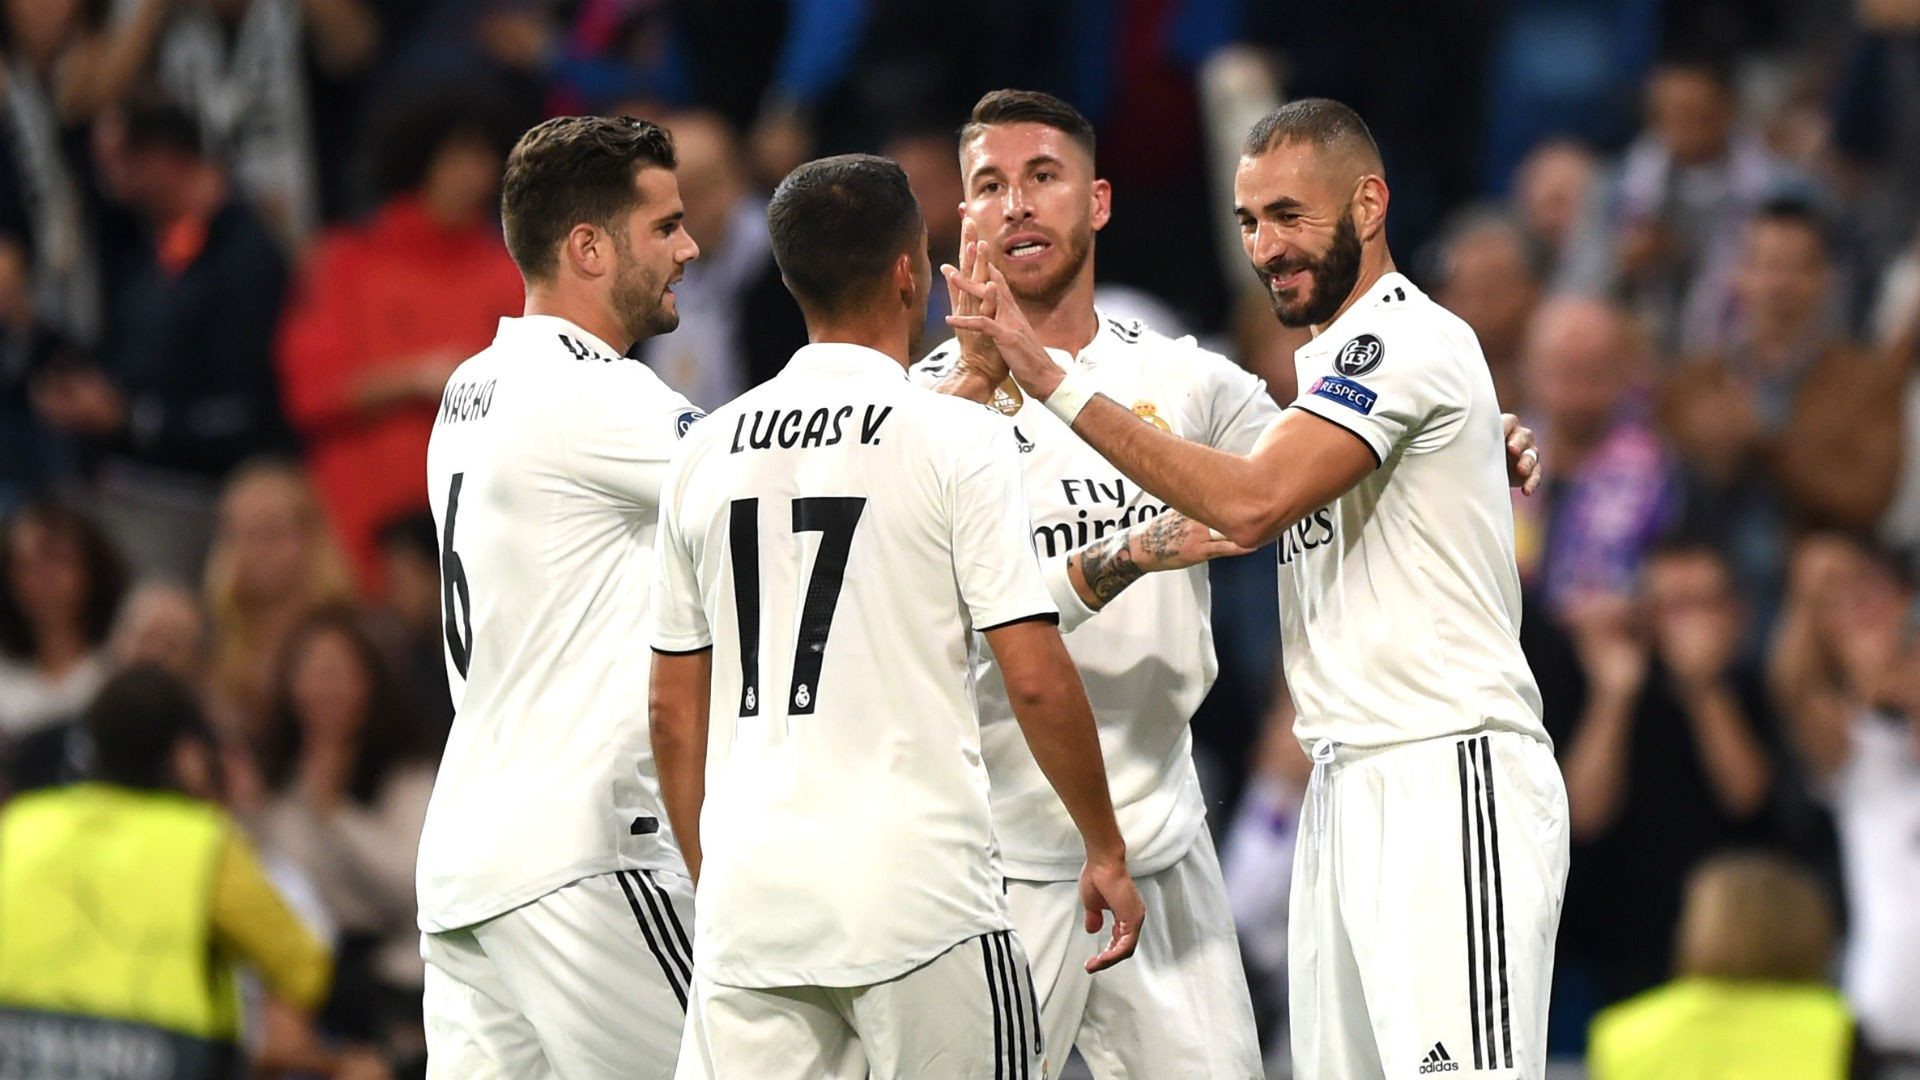 Viktoria Plzen 0-5 Real Madrid [UEFA Champions League Highlights] [Watch]